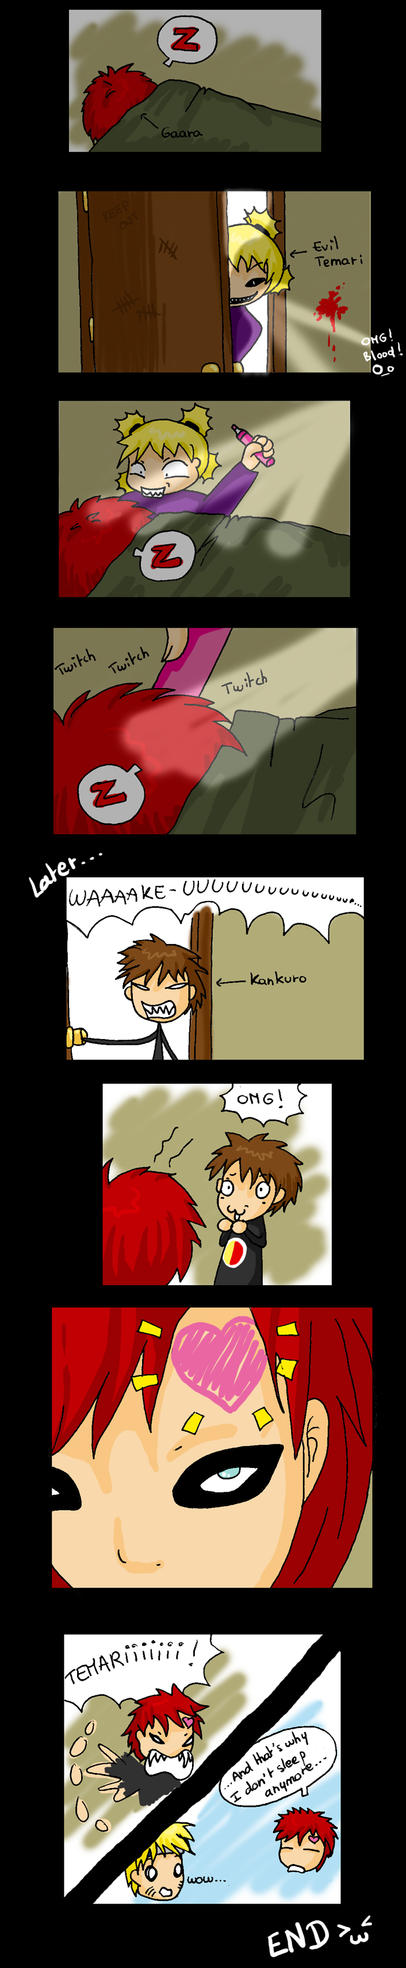 Gaara's childhood -- colored by Japanfanzz